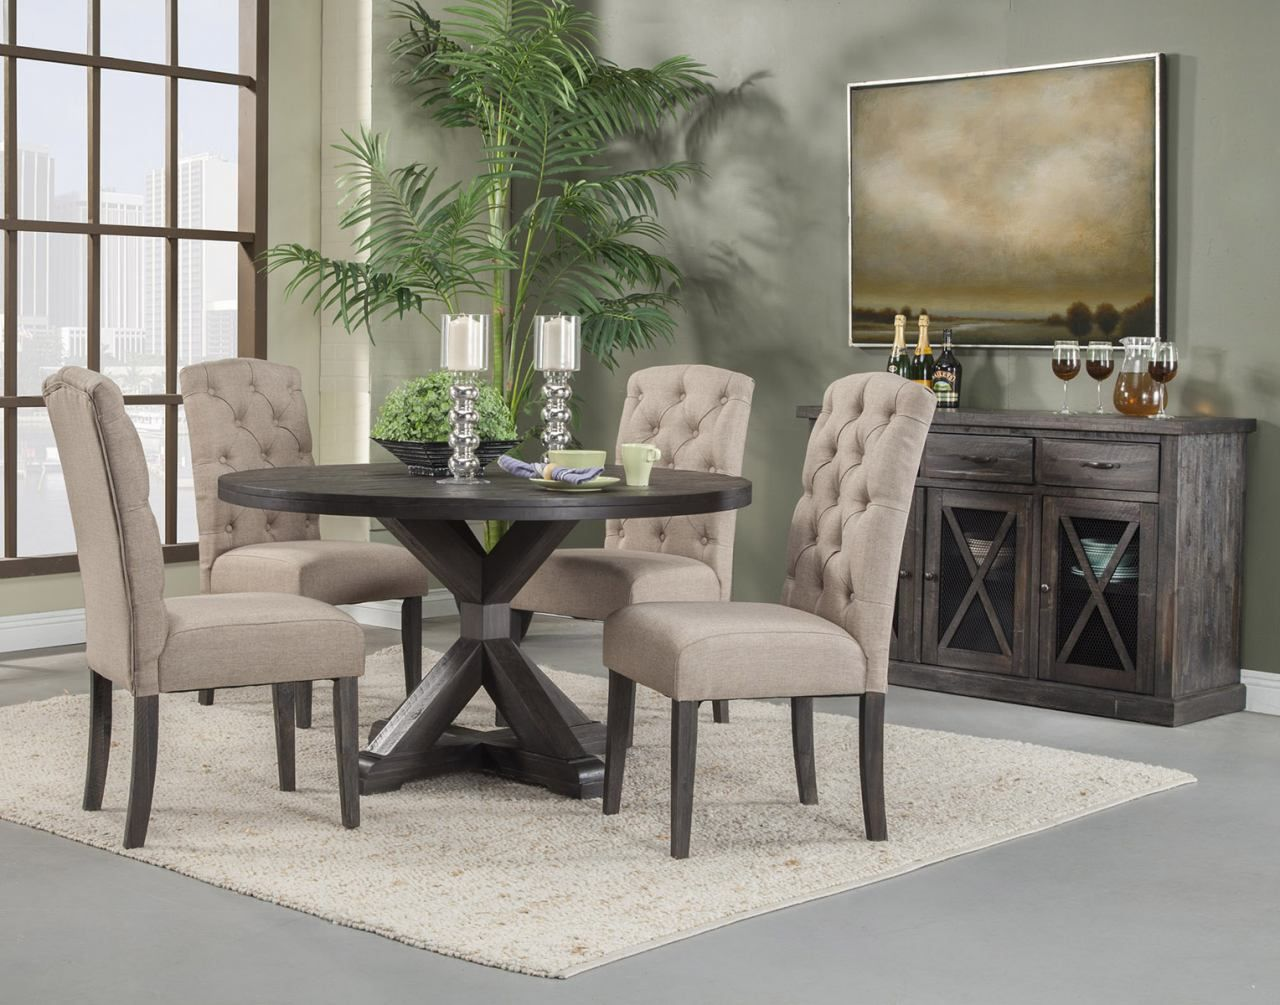 alpine furniture newberry 5 piece round dining room set in salvaged rh pinterest com dining room outlets reviews dining room outlets nec